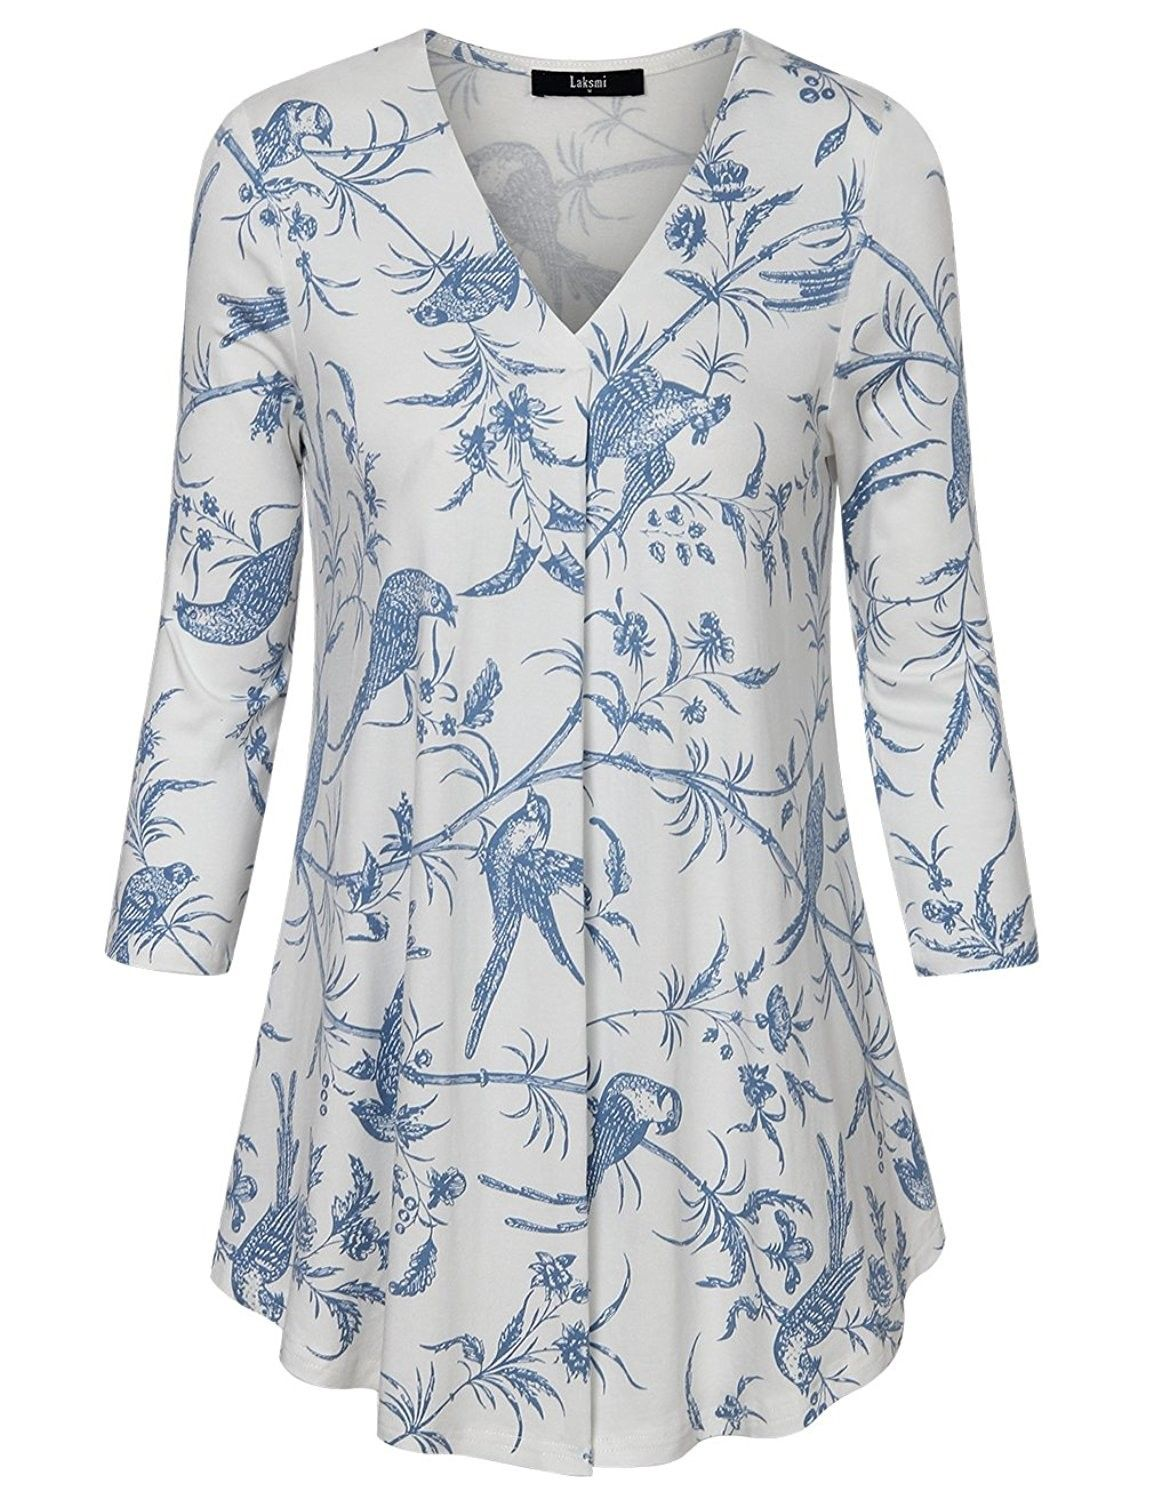 57168bde0c8 Womens Floral Tunic Tops 3 4 Sleeve V Neck Pleated Casual Tunic ...